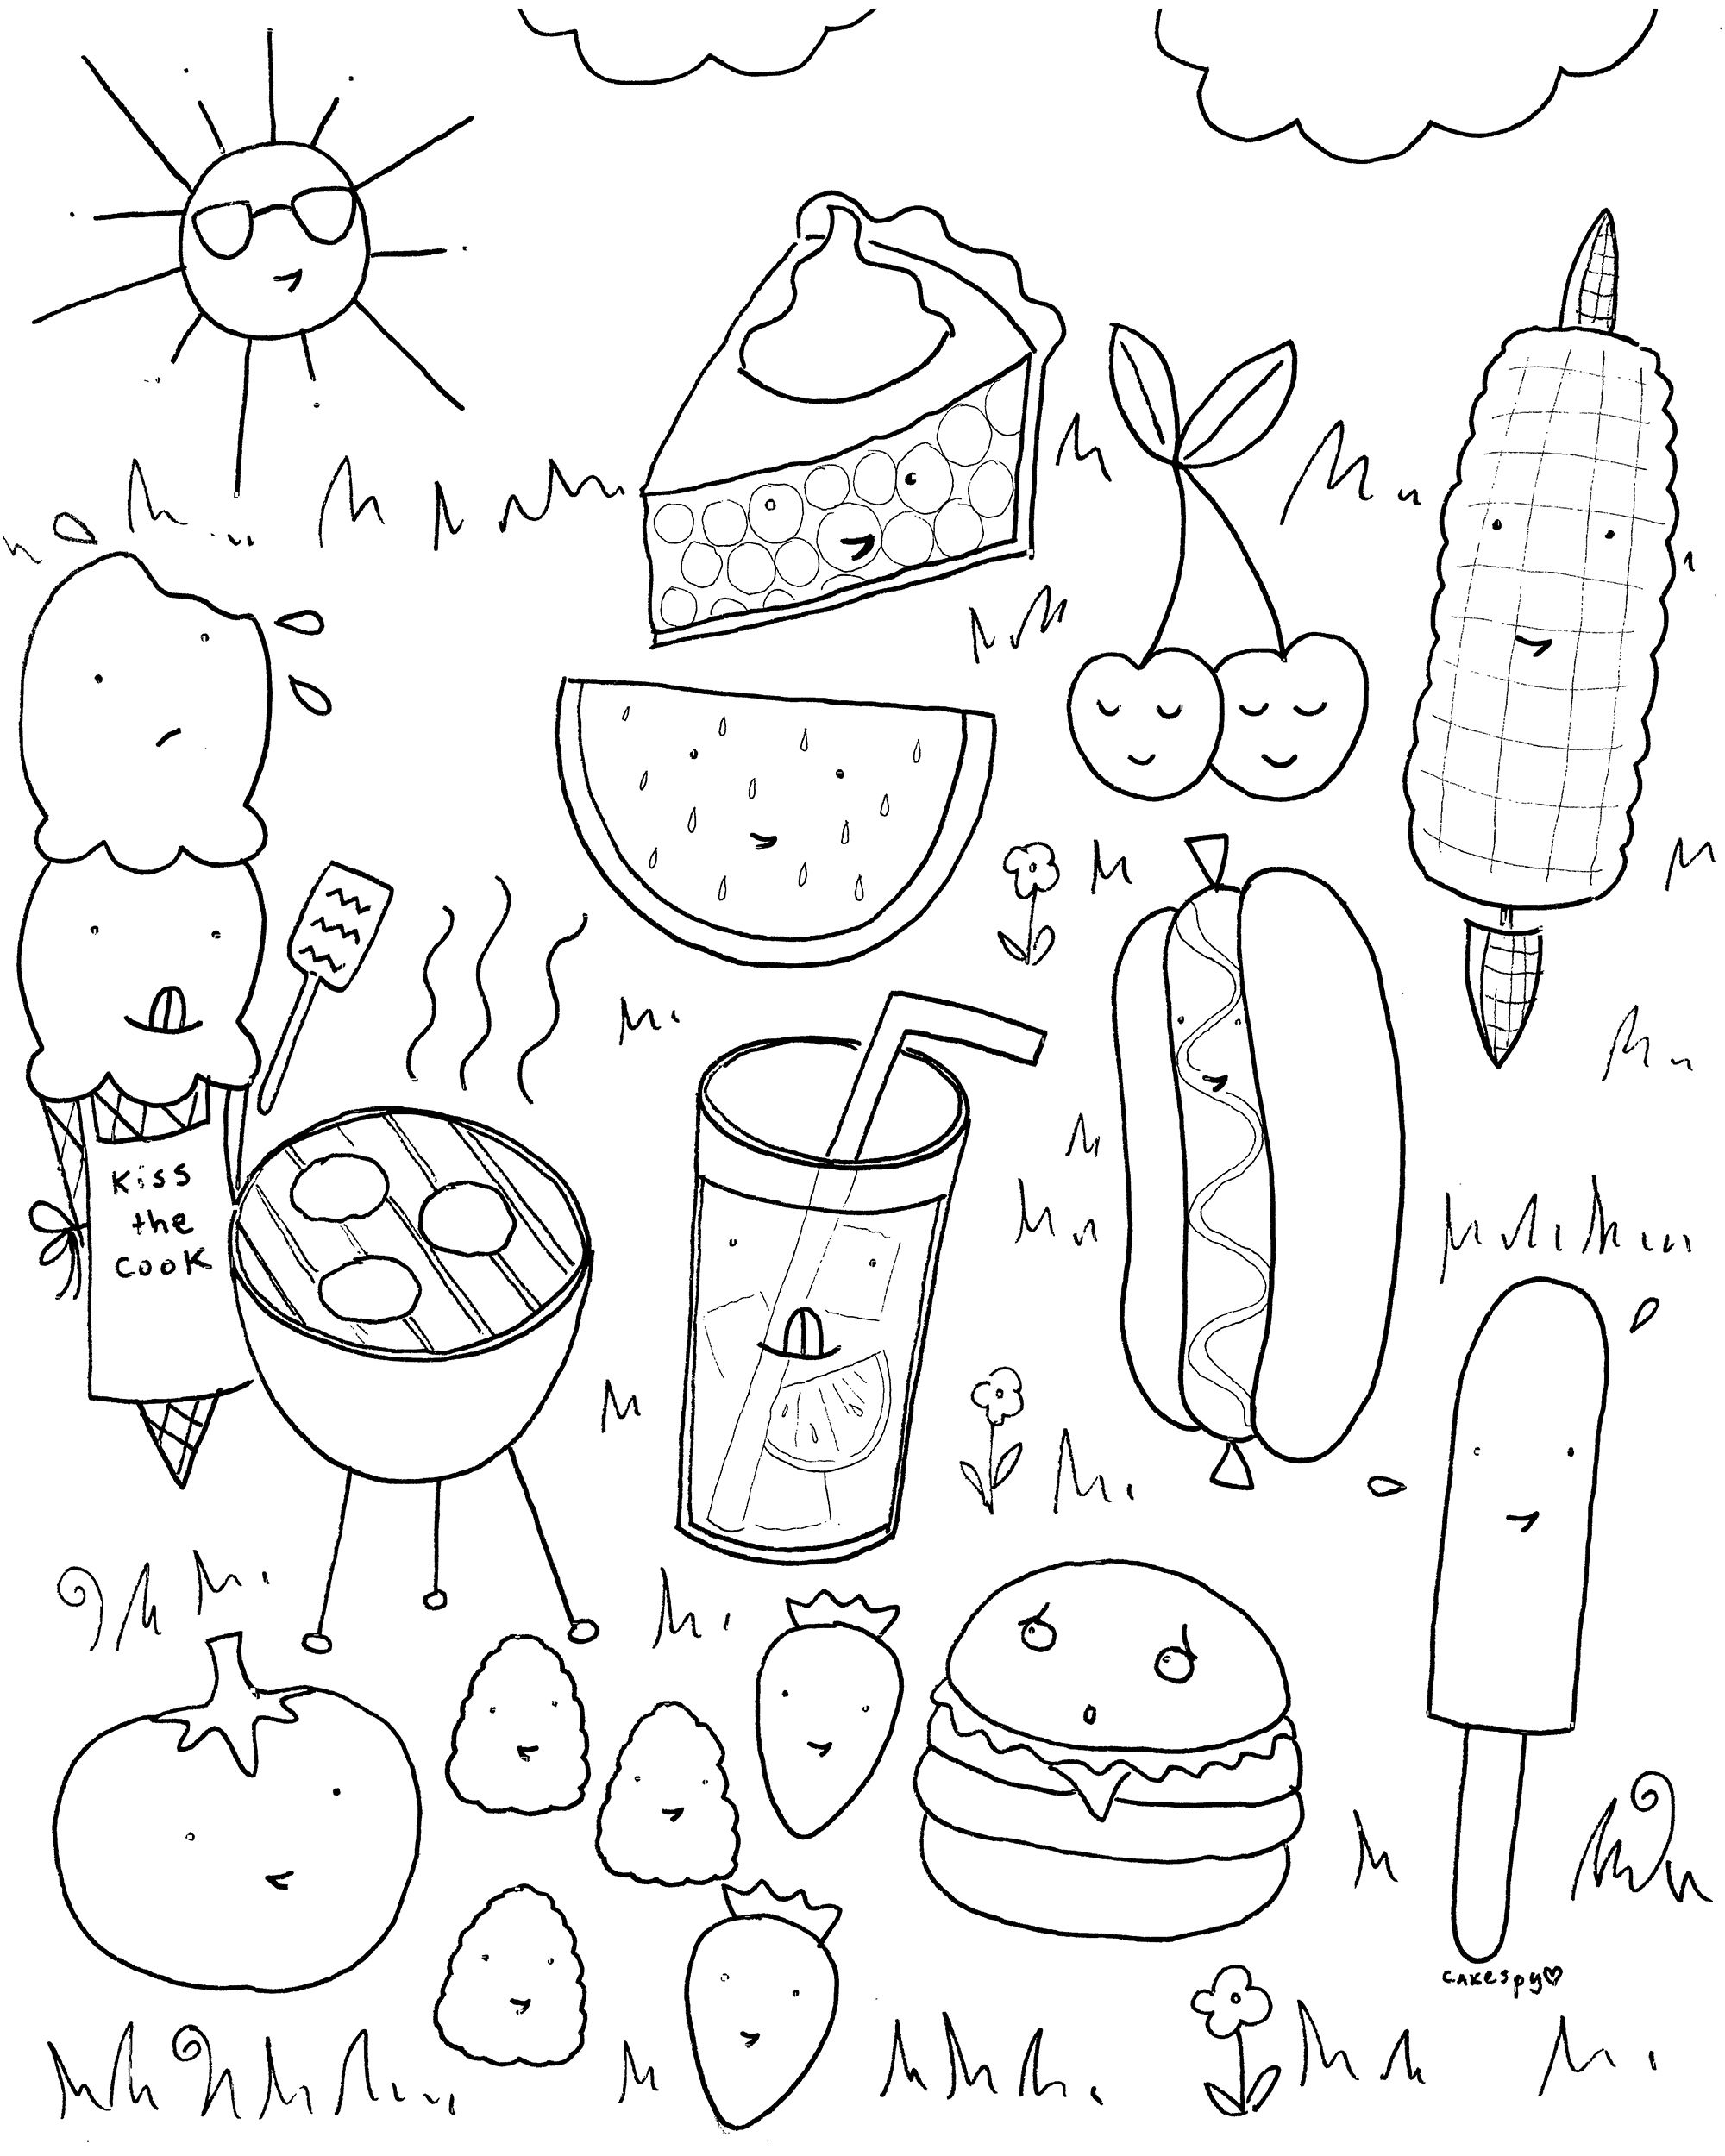 Summer Preschool Coloring Pages Collection 13k - To print for your project